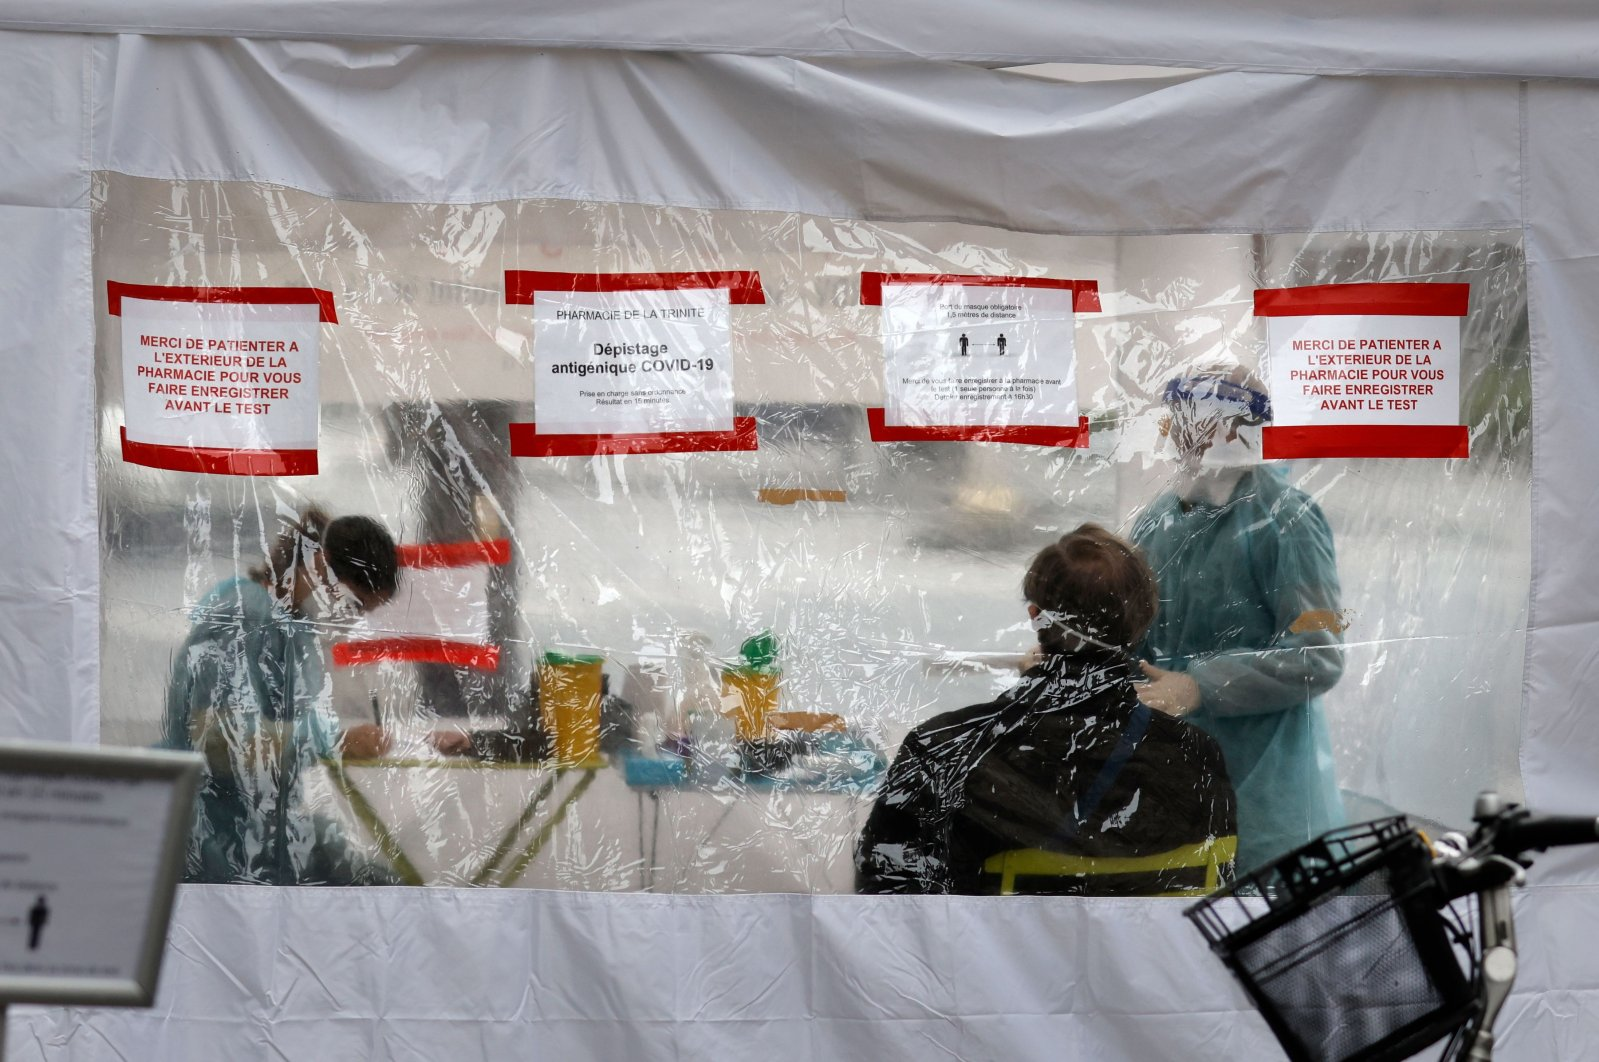 Health workers conduct antigen rapid tests for COVID-19 at a screening test facility, Paris, France, Nov. 23, 2020. (AFP Photo)